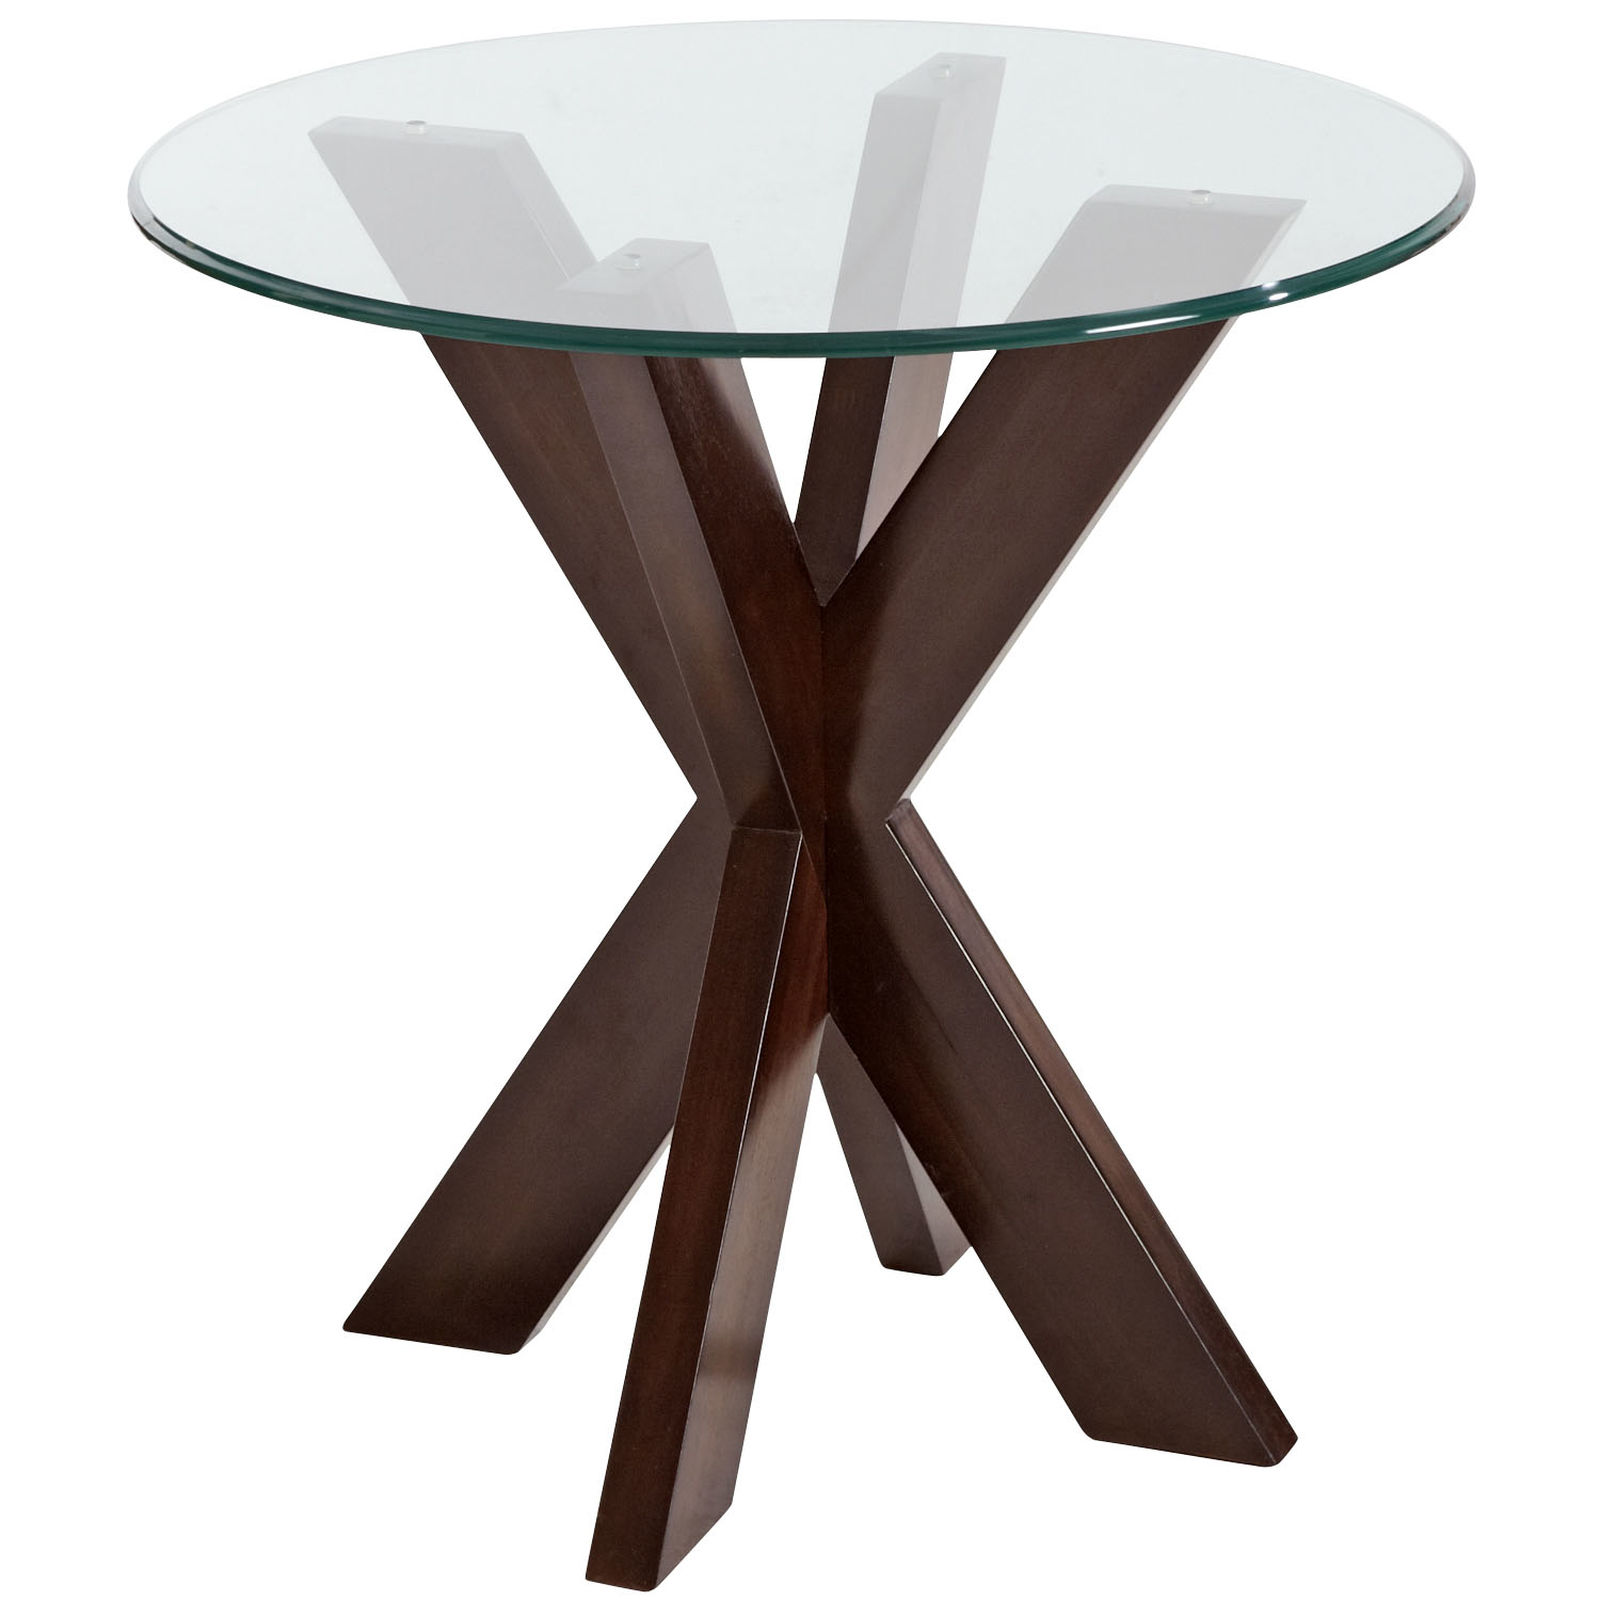 end tables modern espresso luxury pier one simon table base round elana bronze iron coffee trendy small for living room skinny black storage white sofa side accent with lamp set